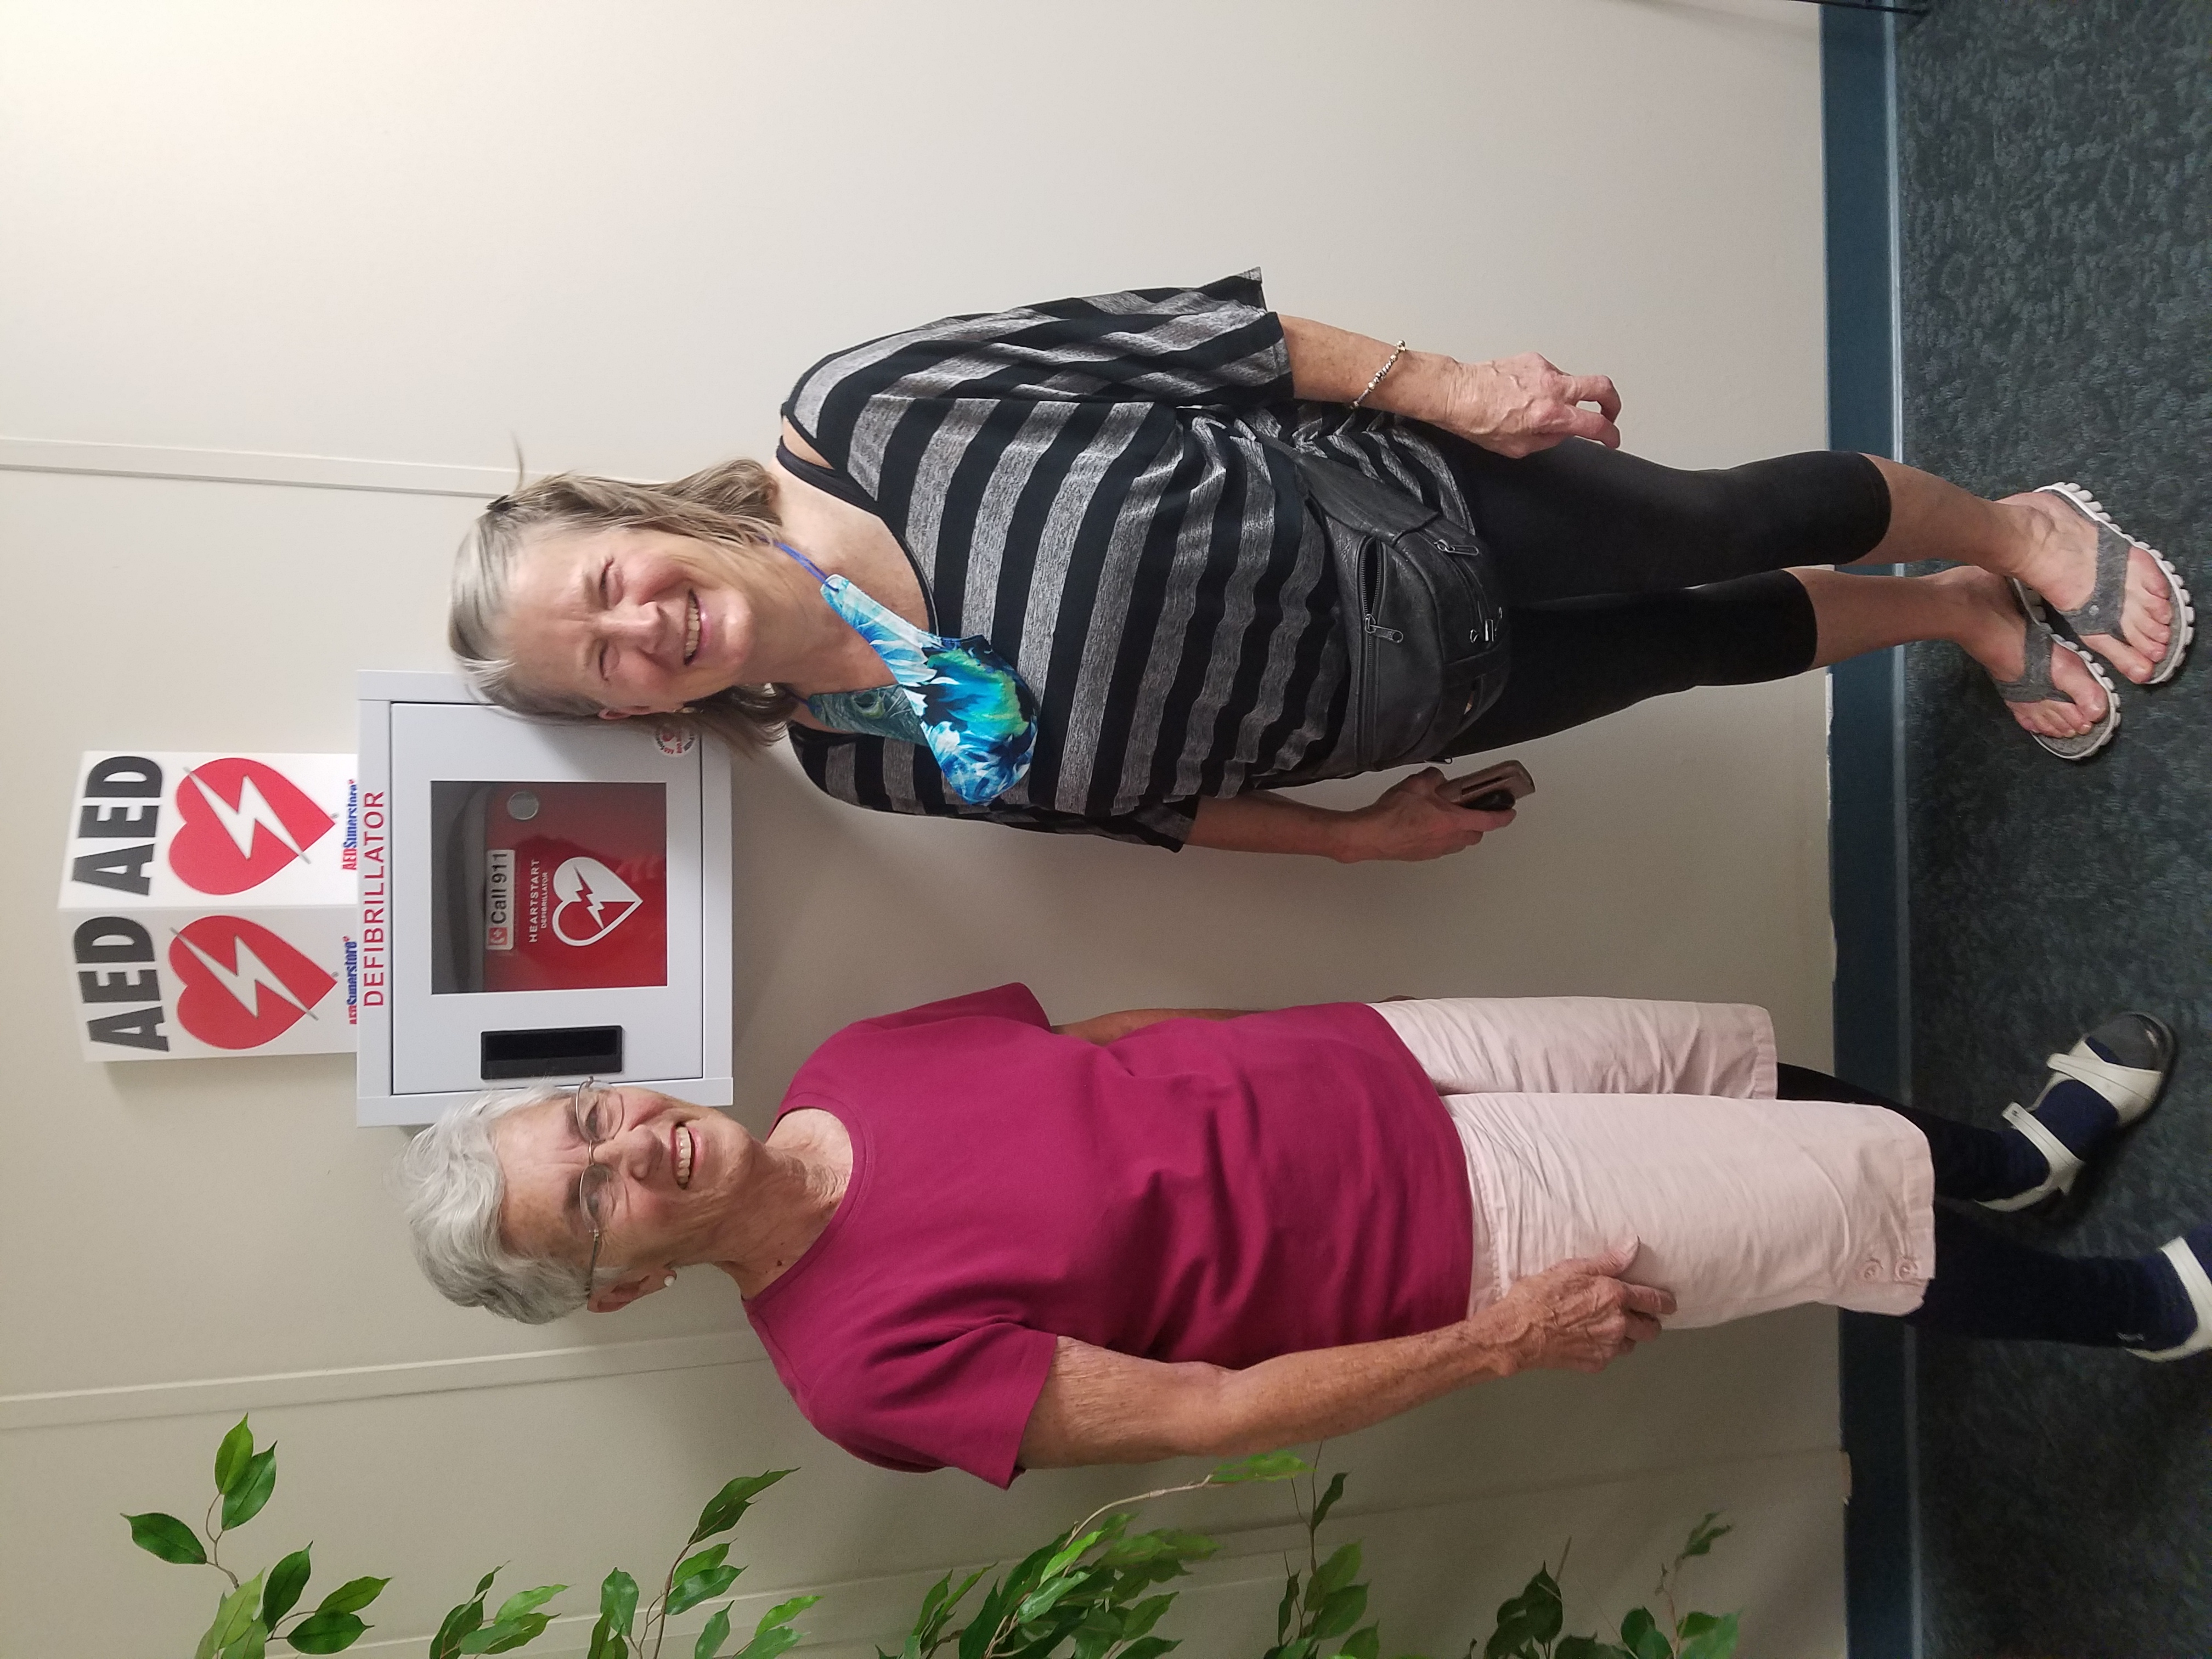 New AED Installed at the Tri-Lakes Senior Center